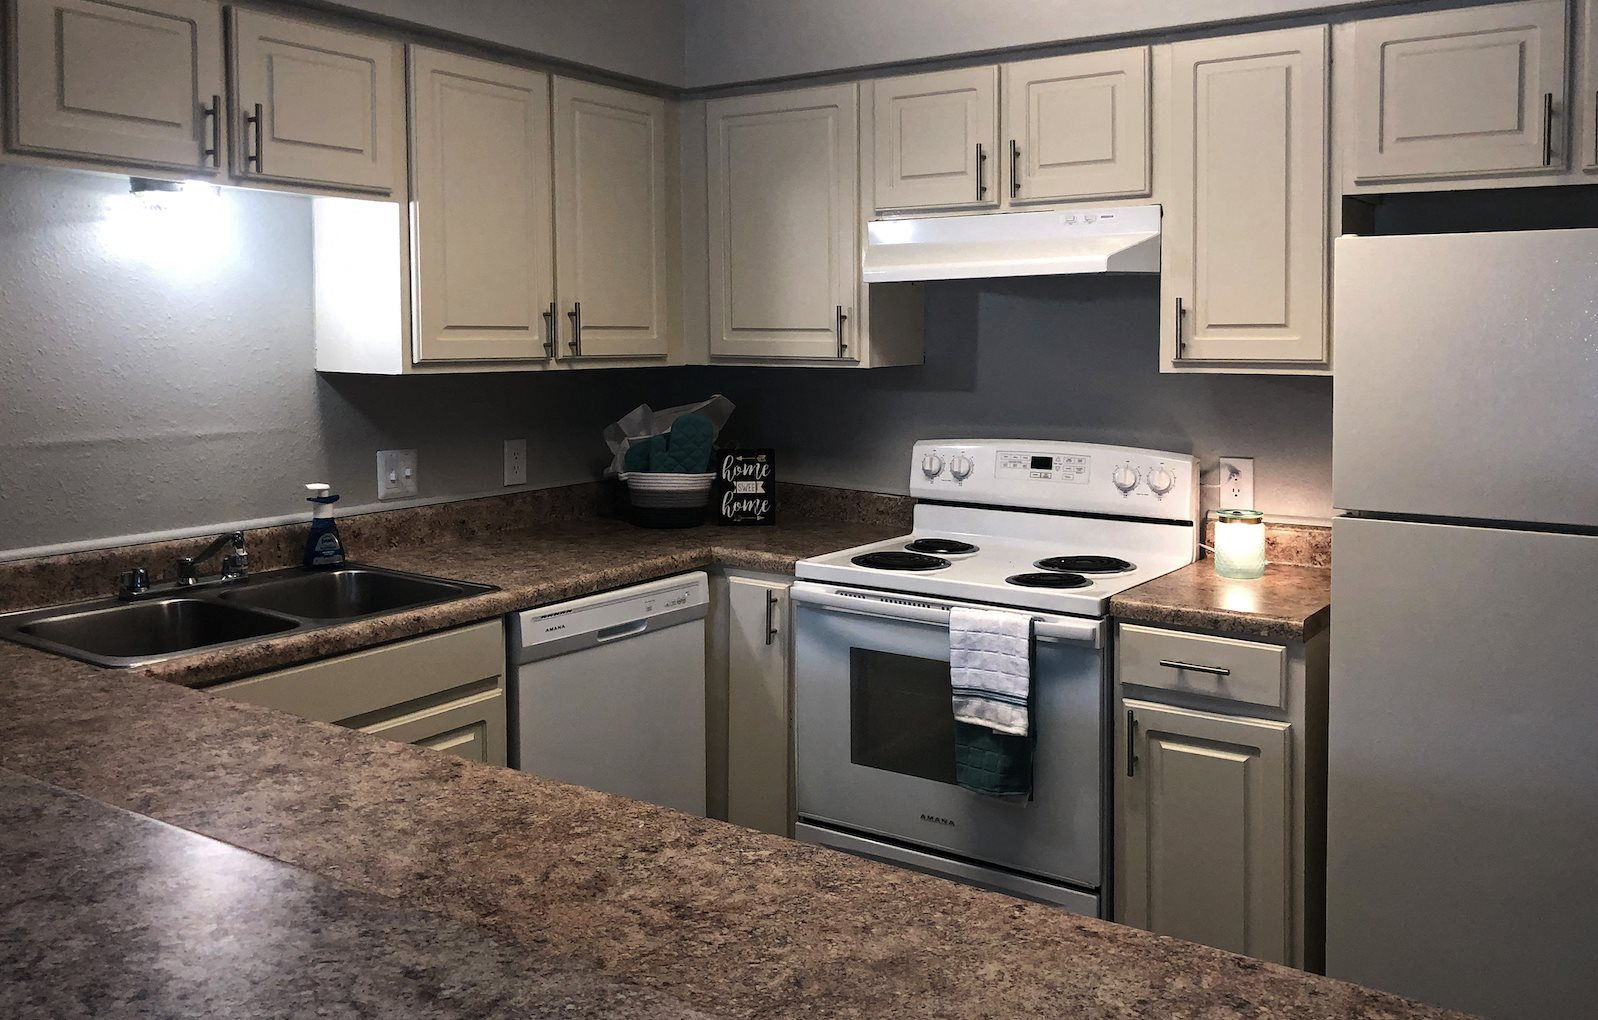 Stylish Kitchen at Pecan Acres Apartments in Lake Charles, LA